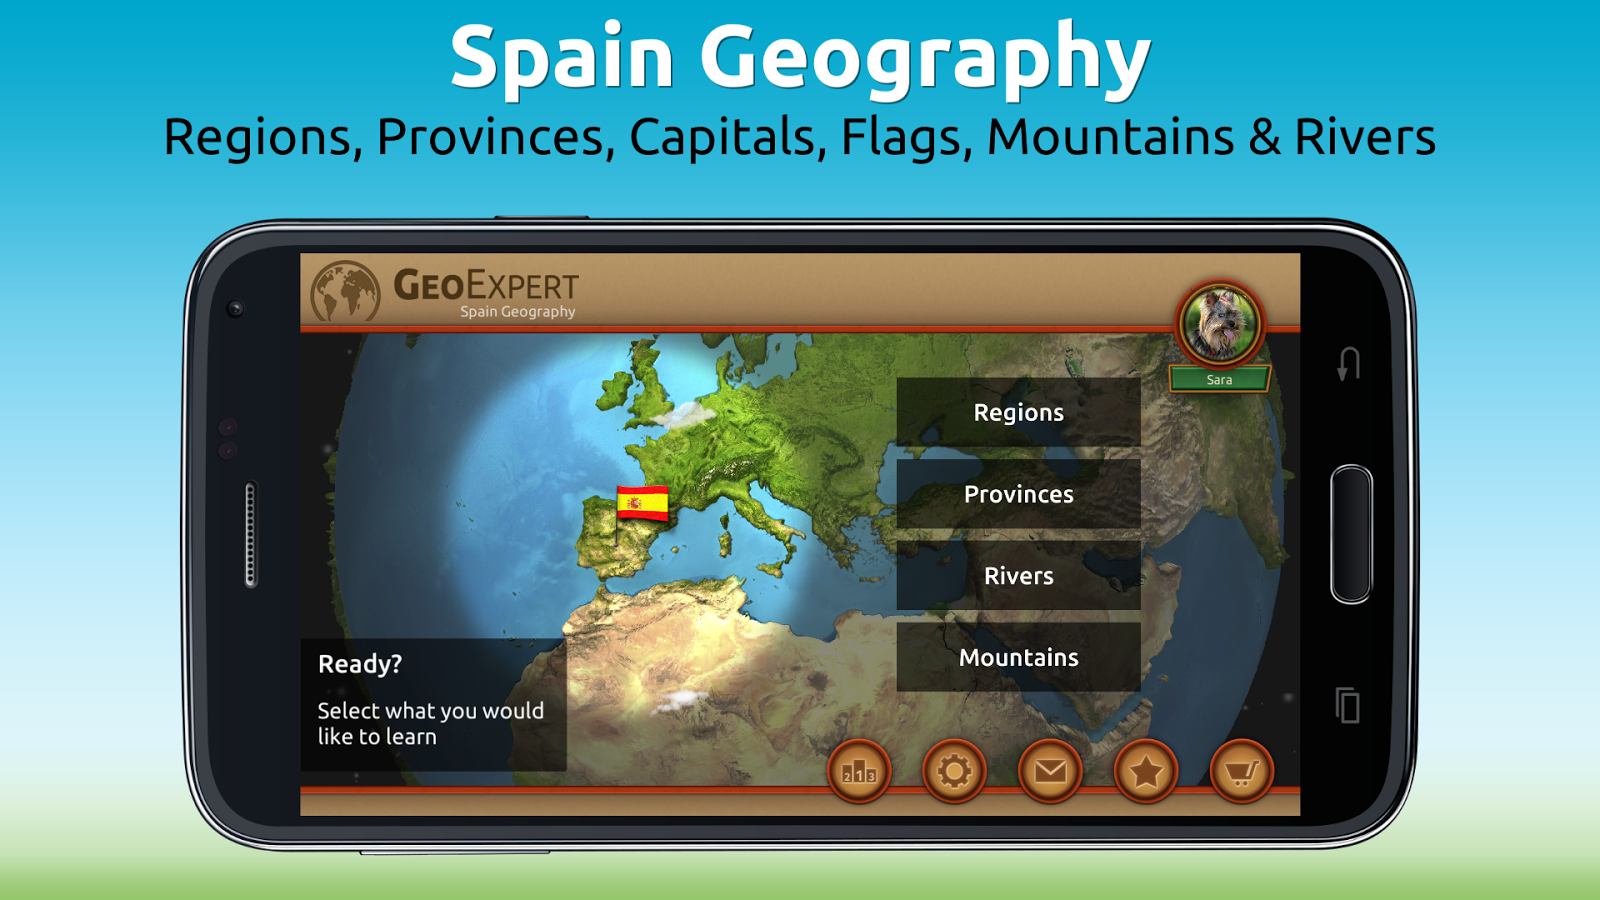 GeoExpert - Spain Geography Screenshot 0